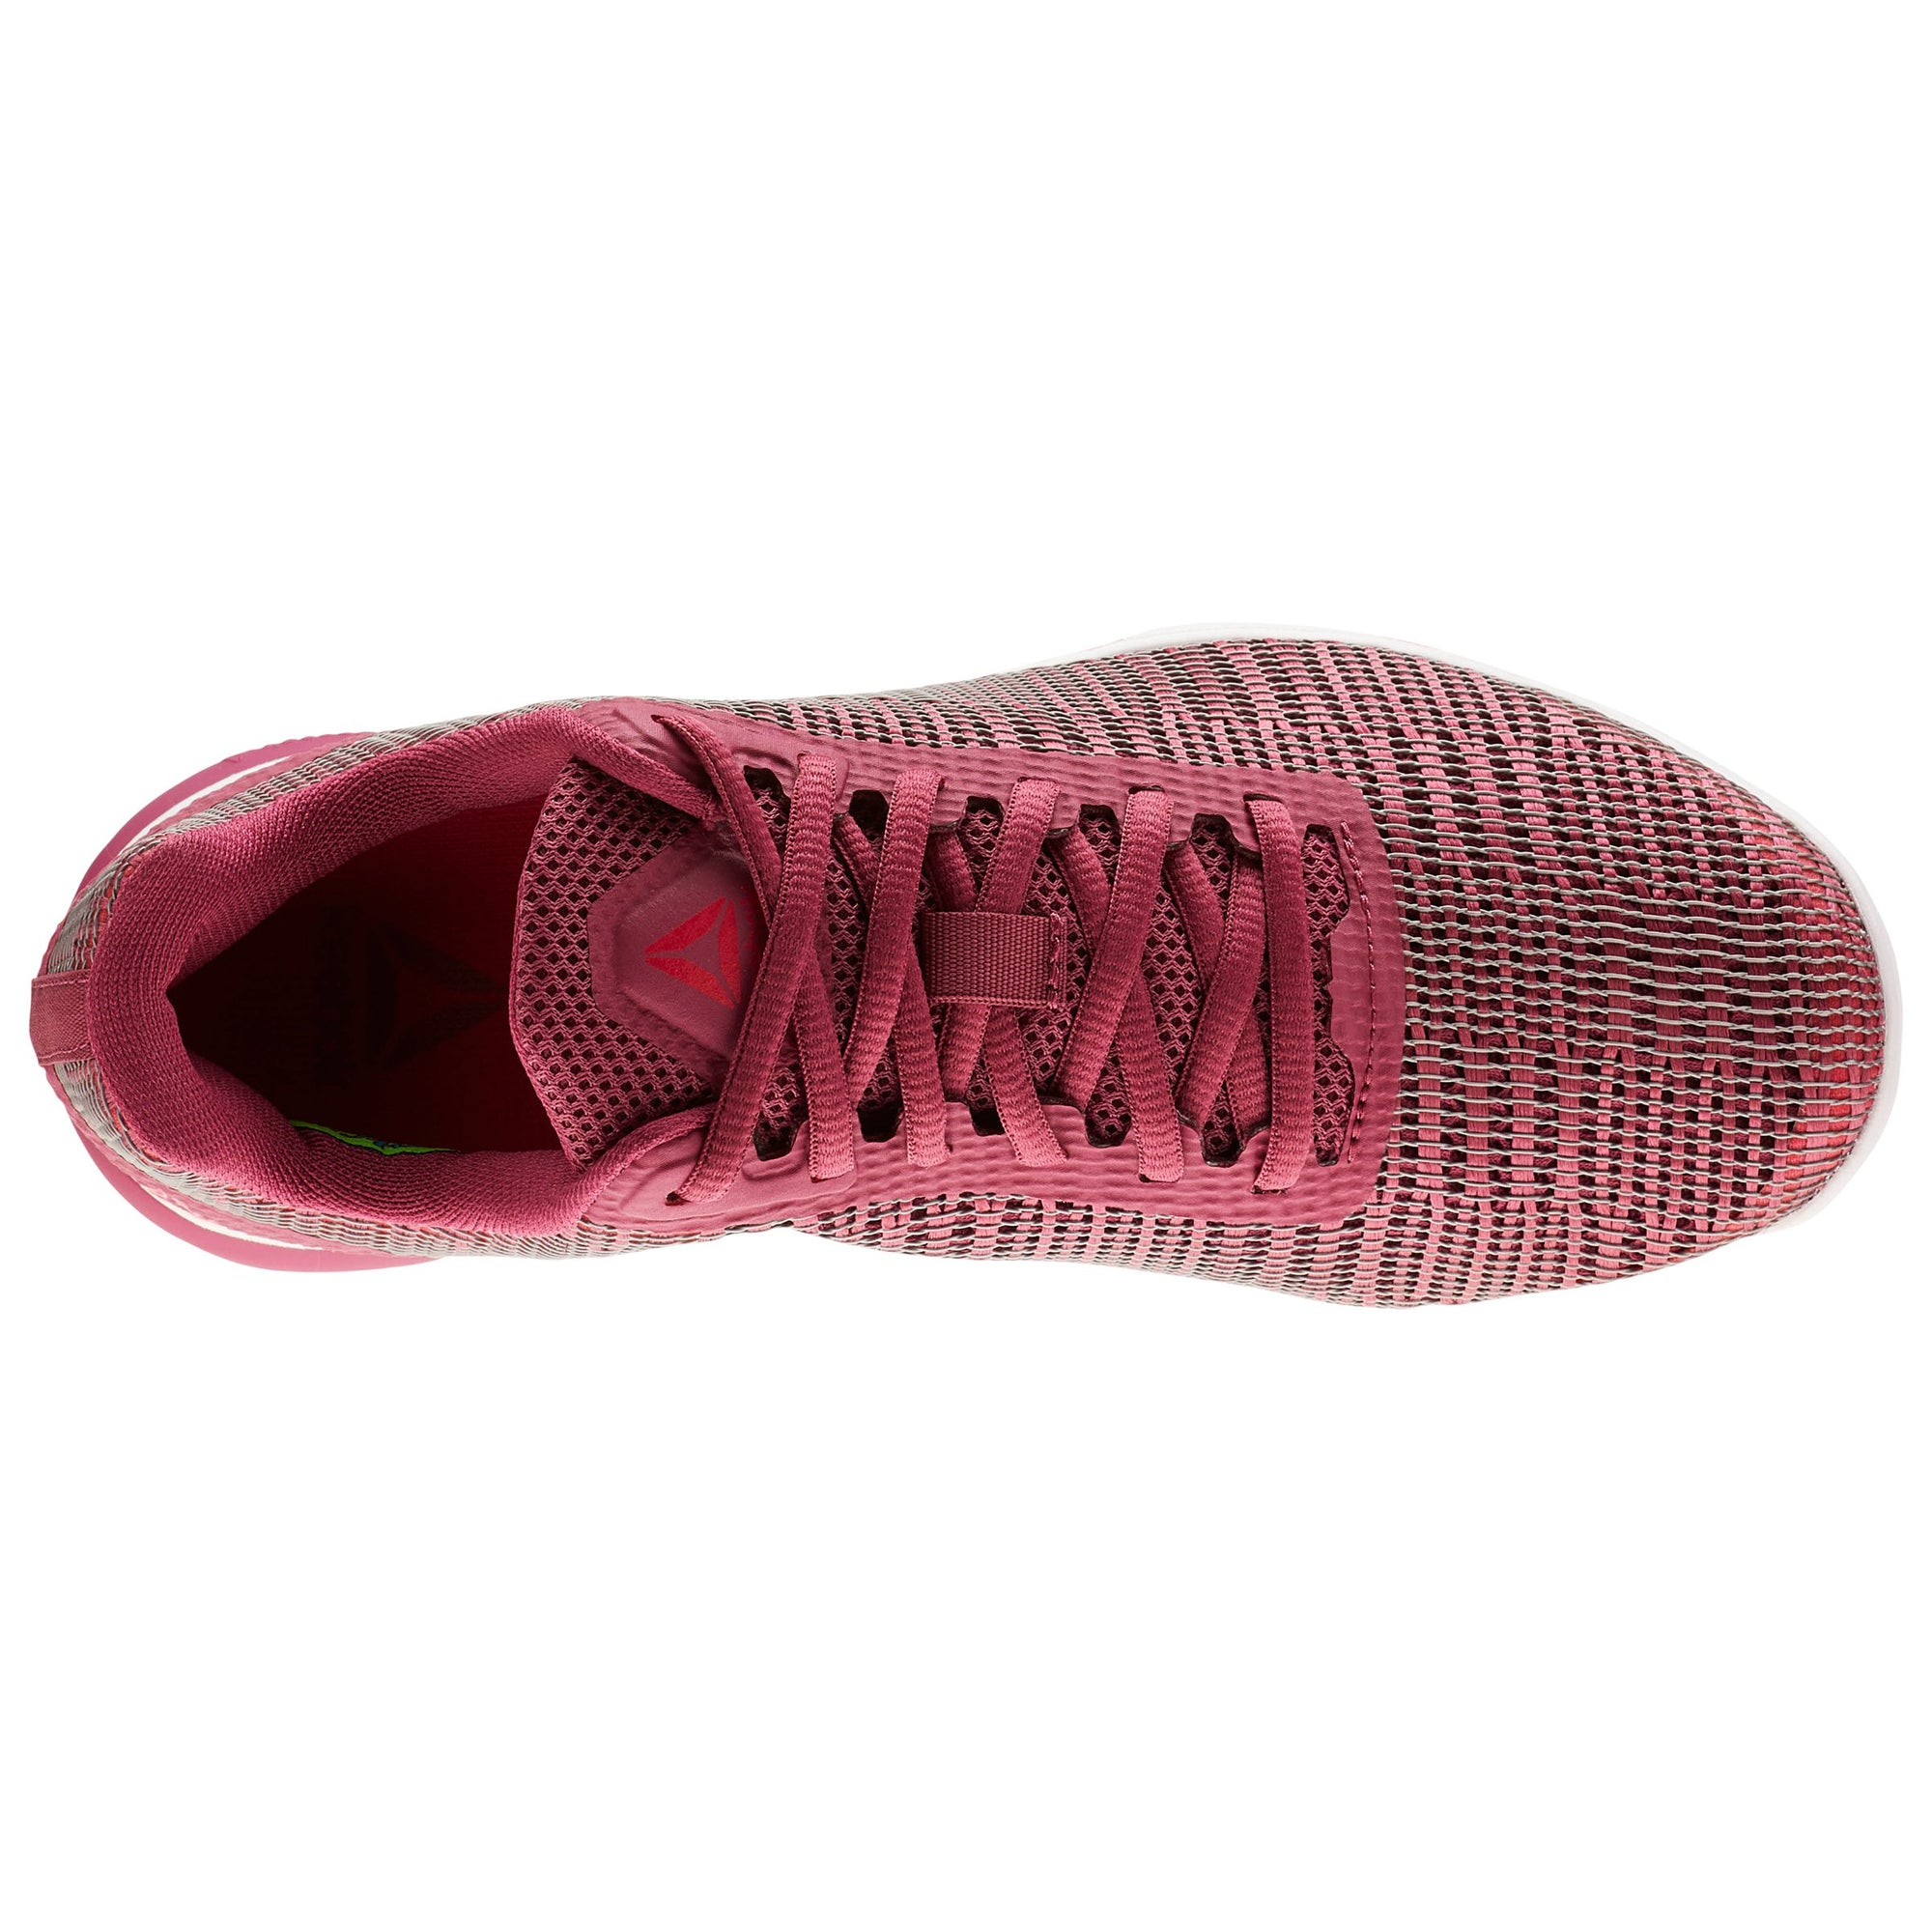 Singapore Reebok Women Speed Flexweave Training Shoes f1a06d3f2